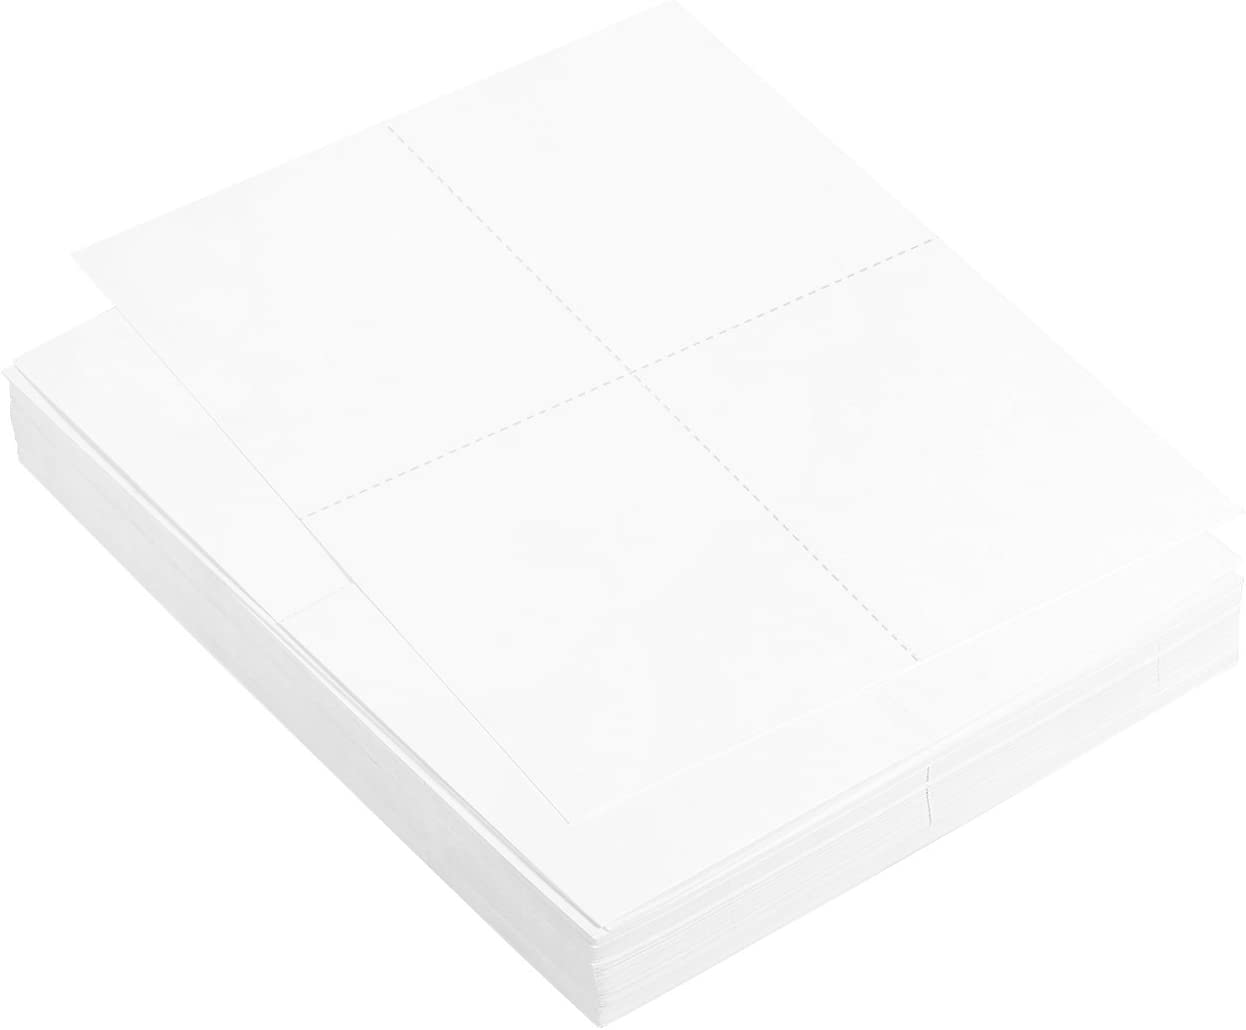 White Postcard Stock for Laser Printers Postcards are 5.5 x 4.25 Inches Each 400 Printable Post Cards in Total 100 Sheets Blank Postcard Paper